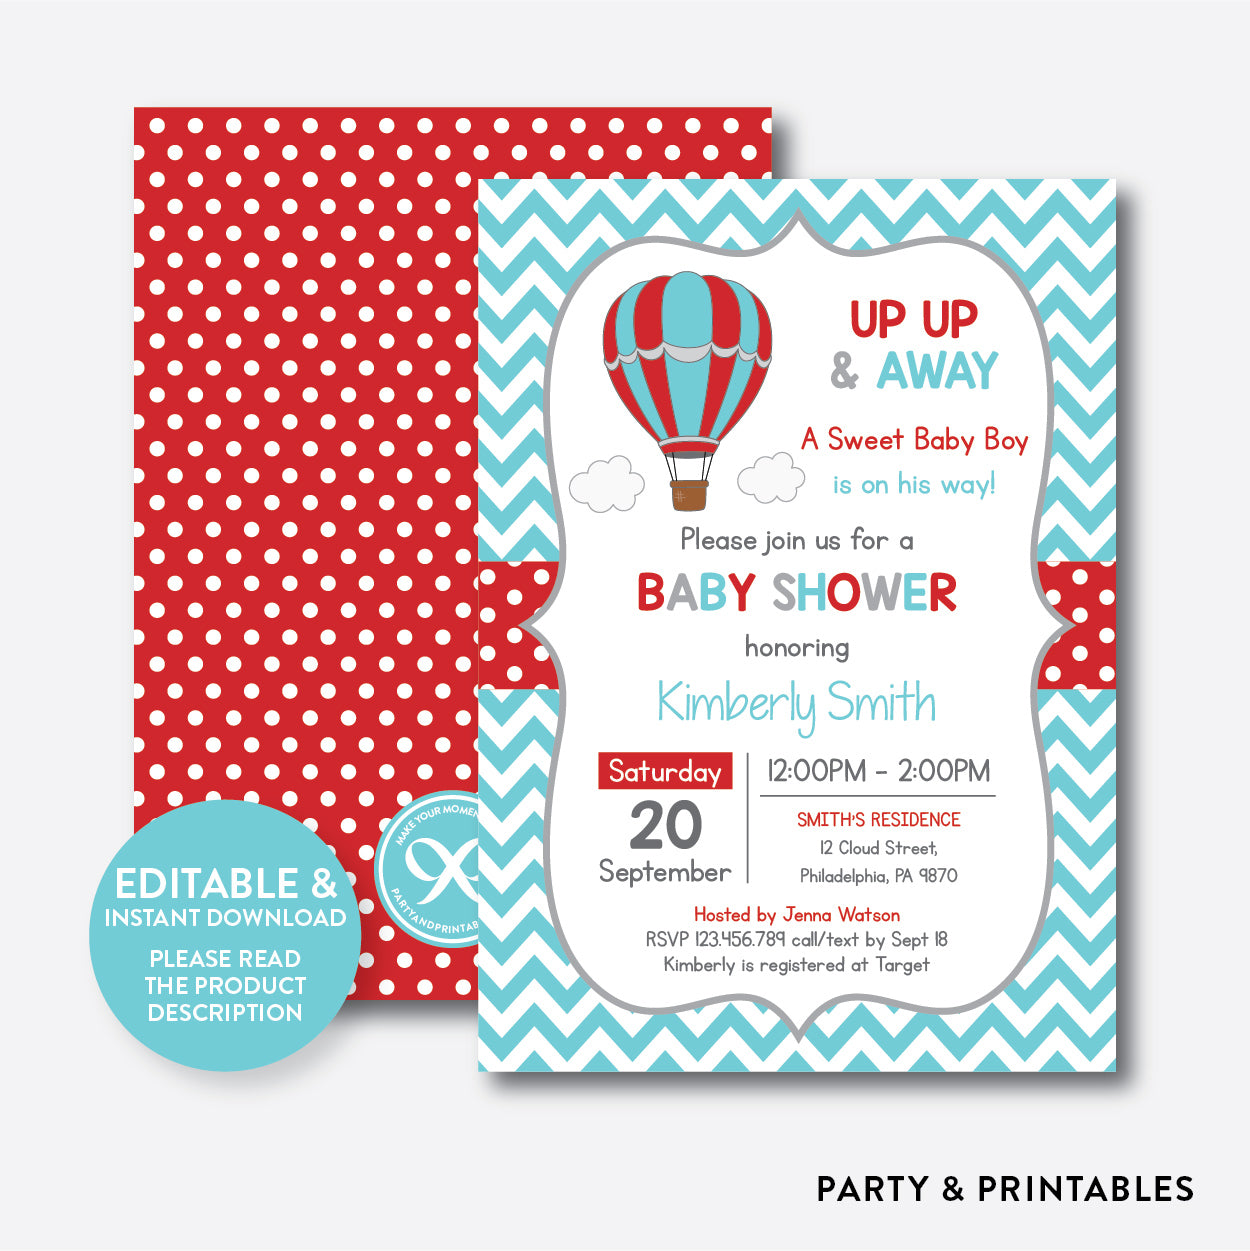 image about Printable Hot Air Balloon titled Incredibly hot Air Balloon Little one Shower Invitation / Editable / Quick Down load (SBS.85)